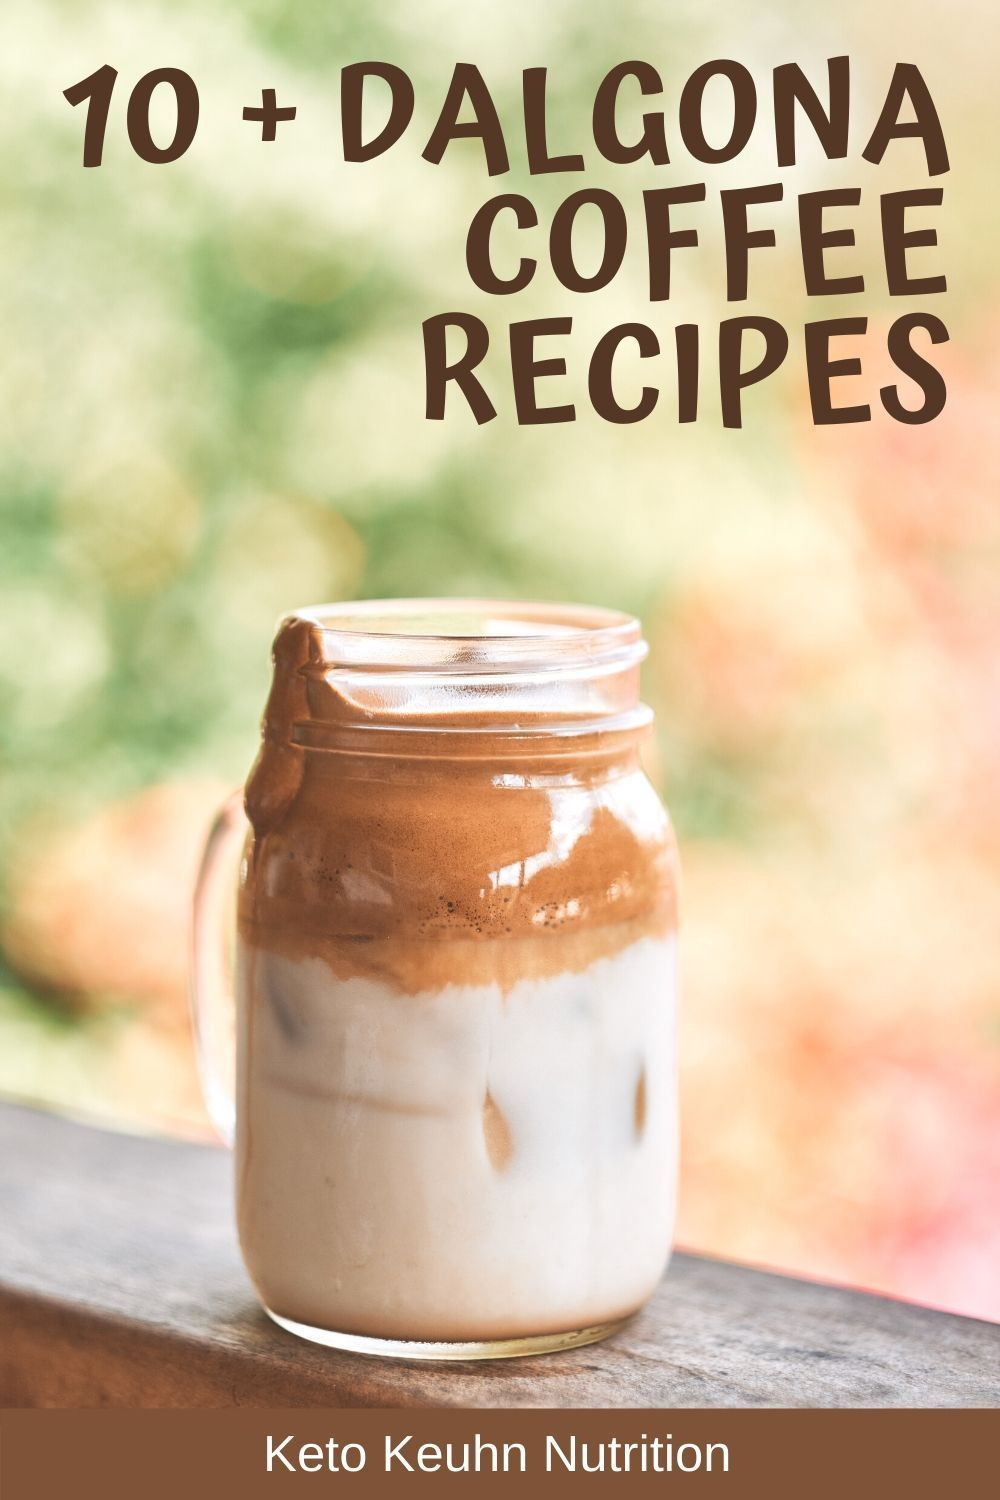 Tons of different dalgona, whipped coffee, recipes in this ...